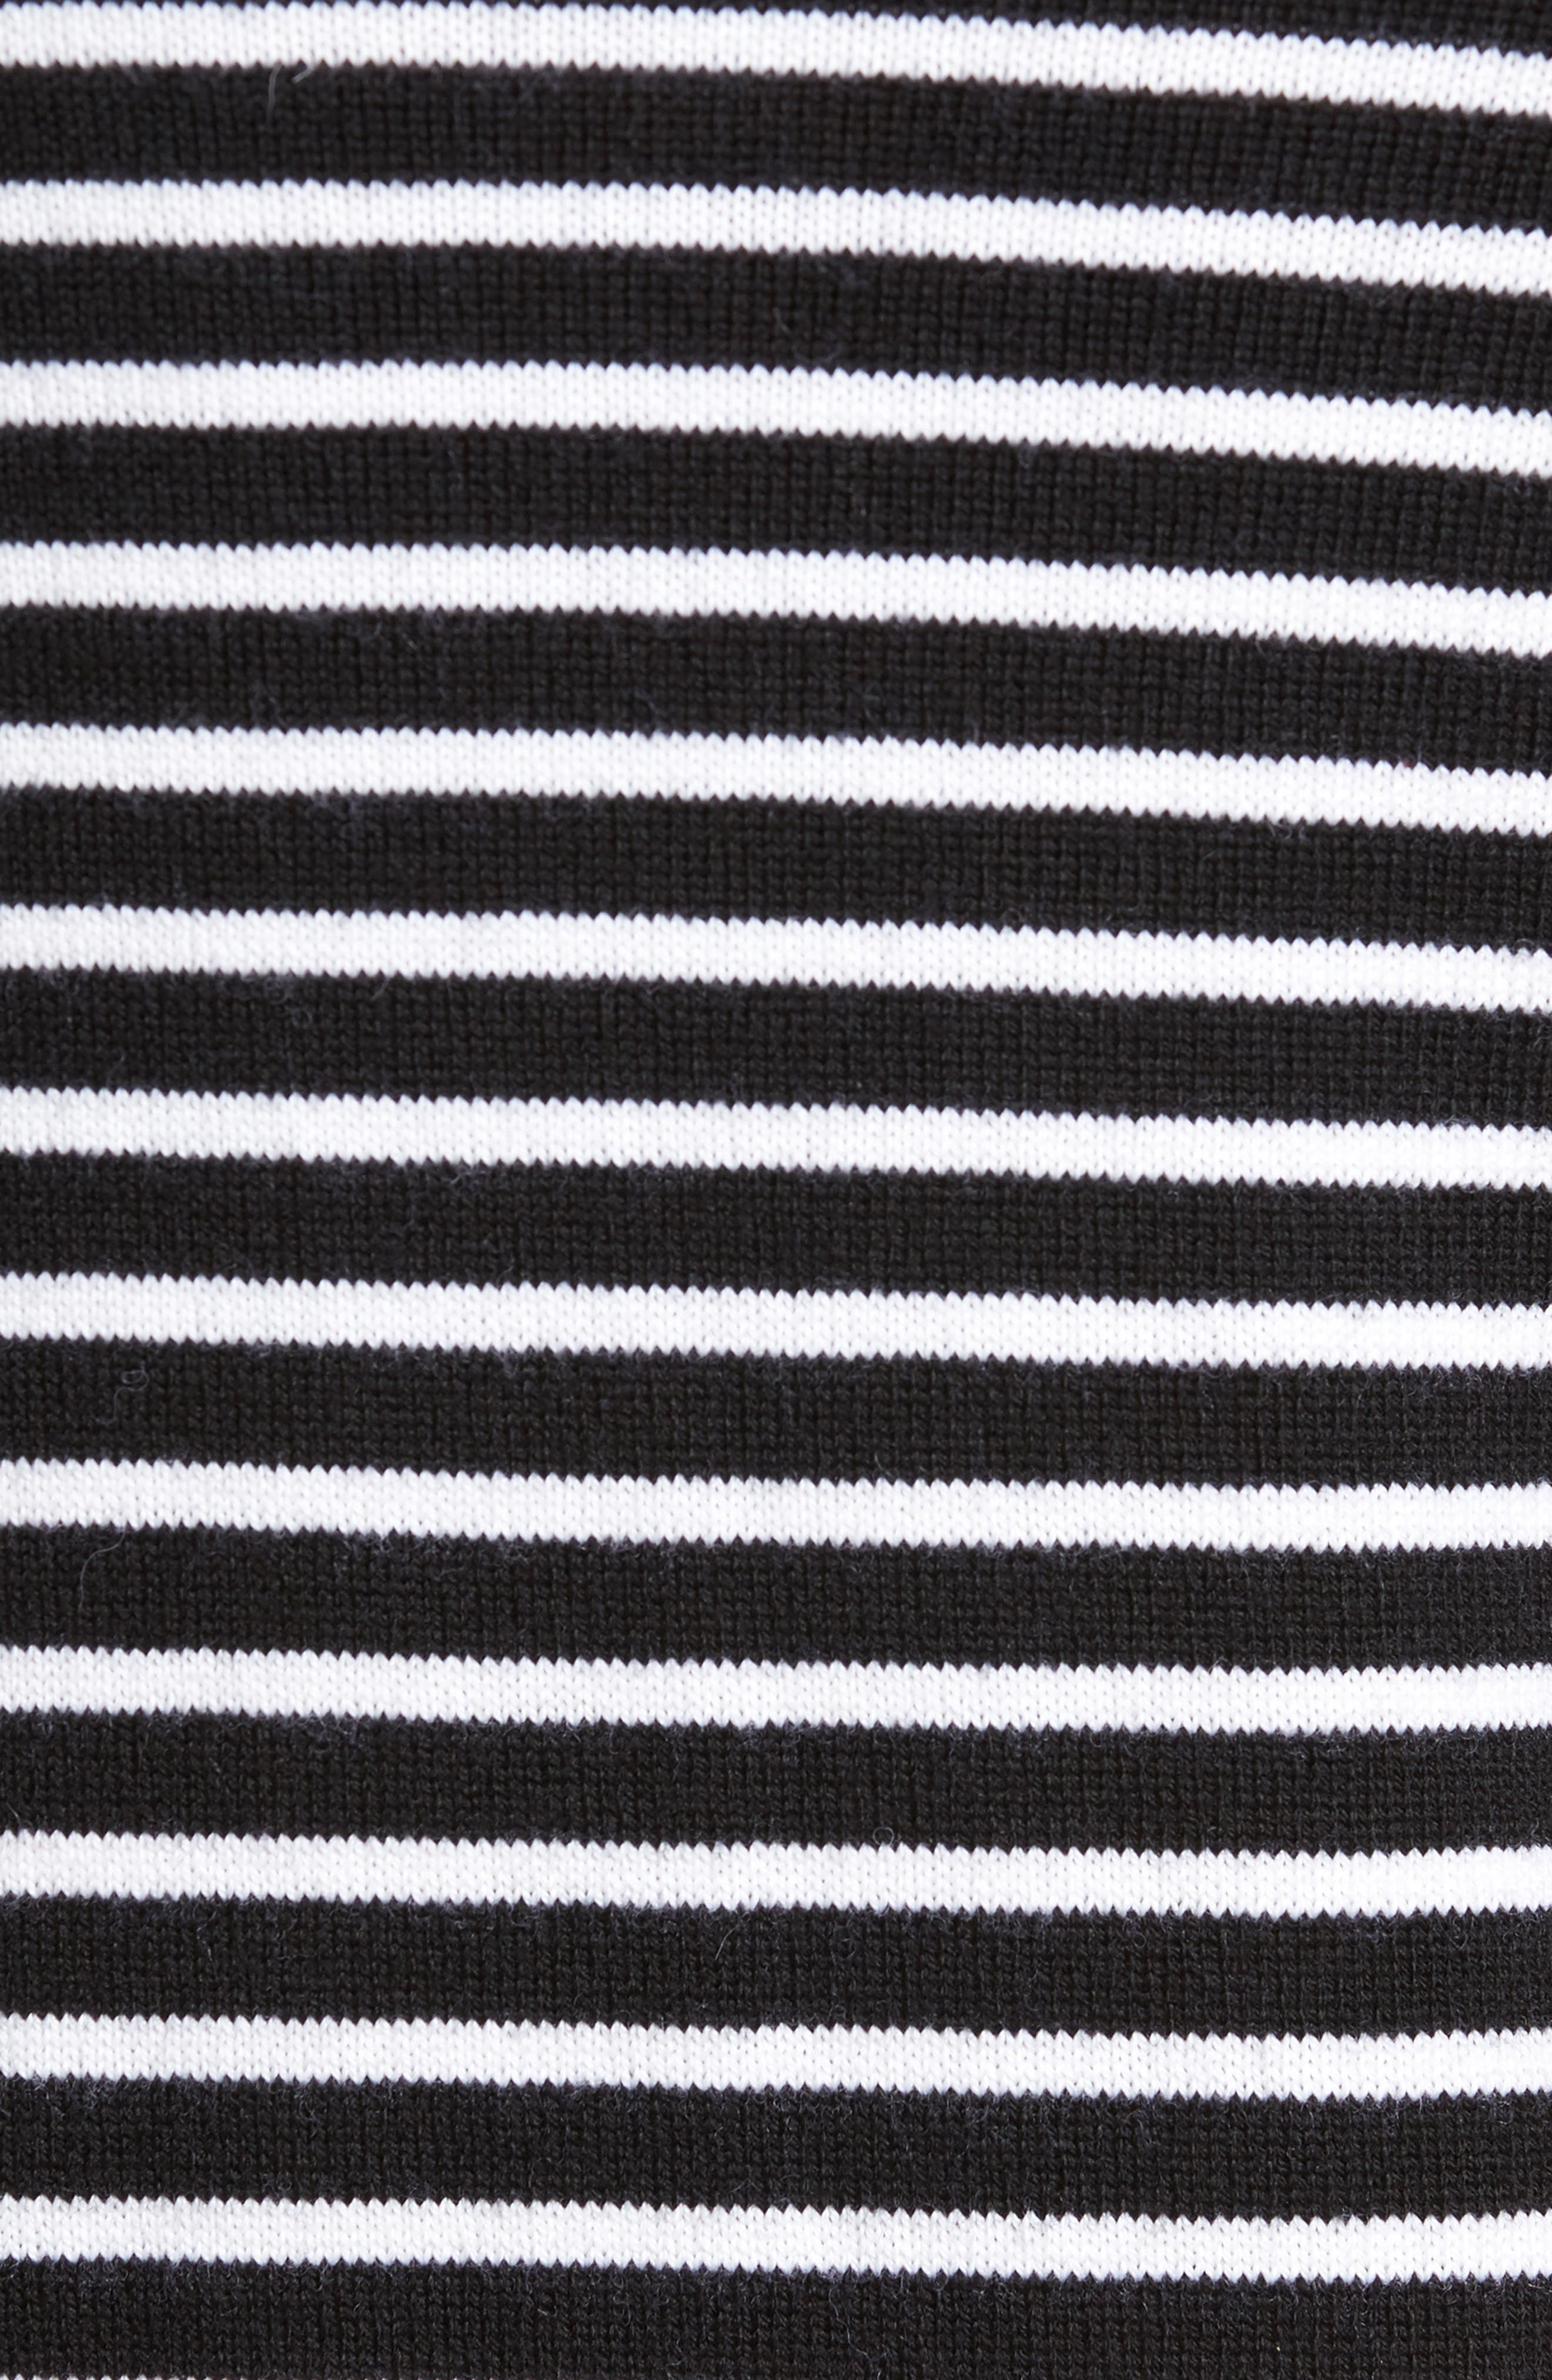 Regular Fit Striped Wool Sweater,                             Alternate thumbnail 5, color,                             001